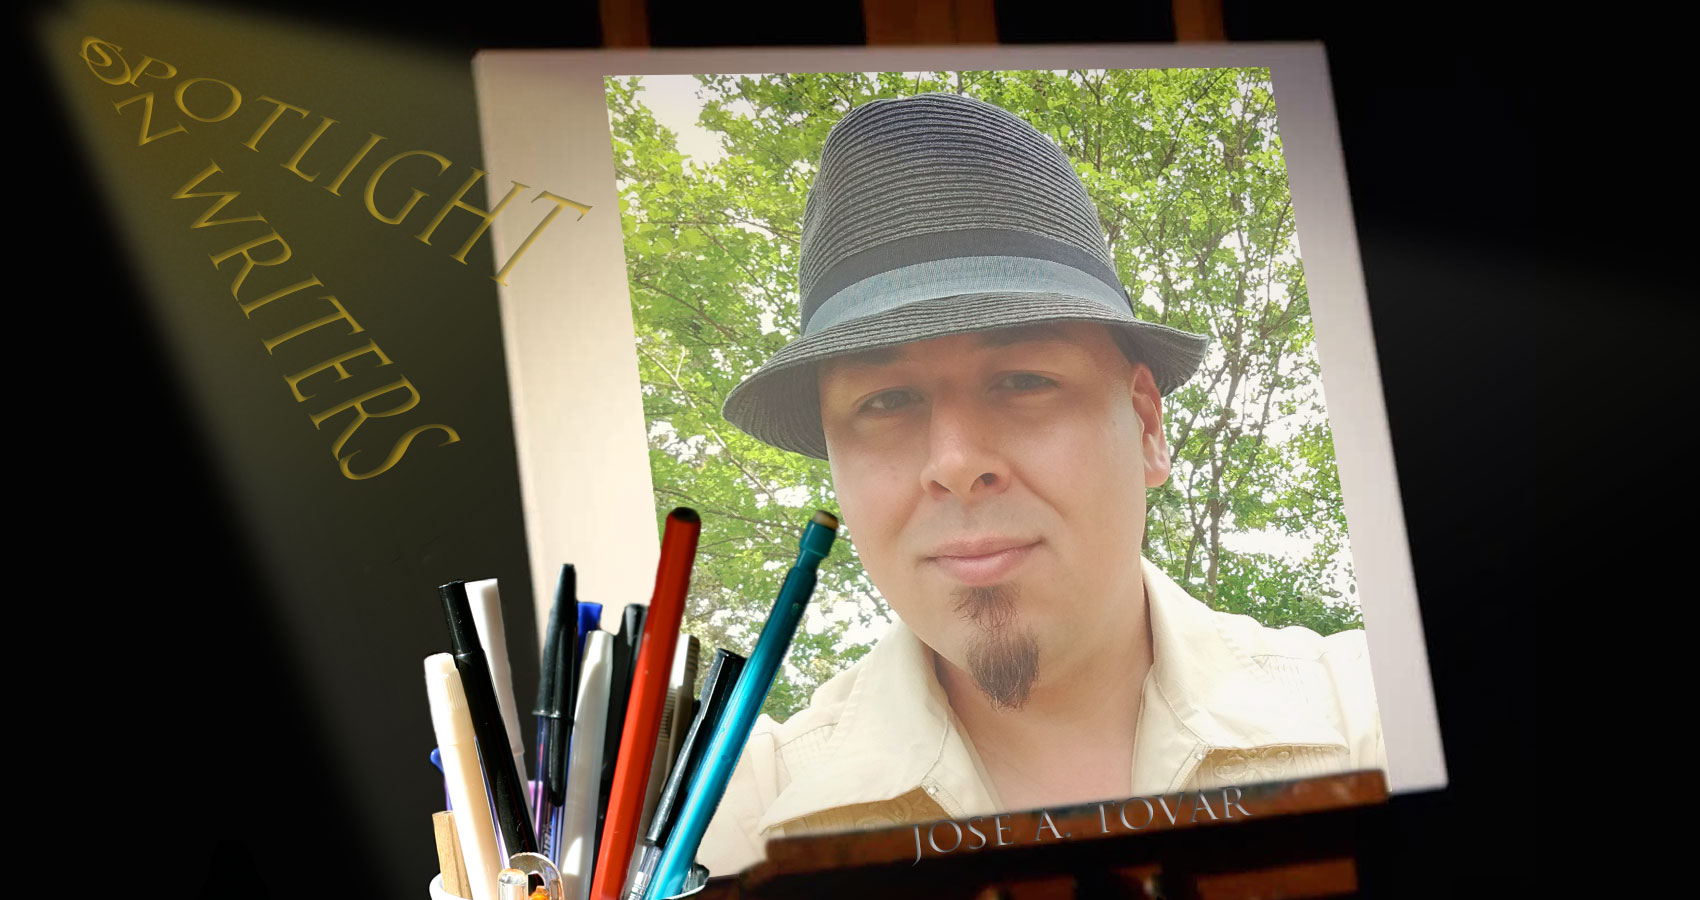 Spotlight On Writers - Jose A. Tovar at Spillwords.com